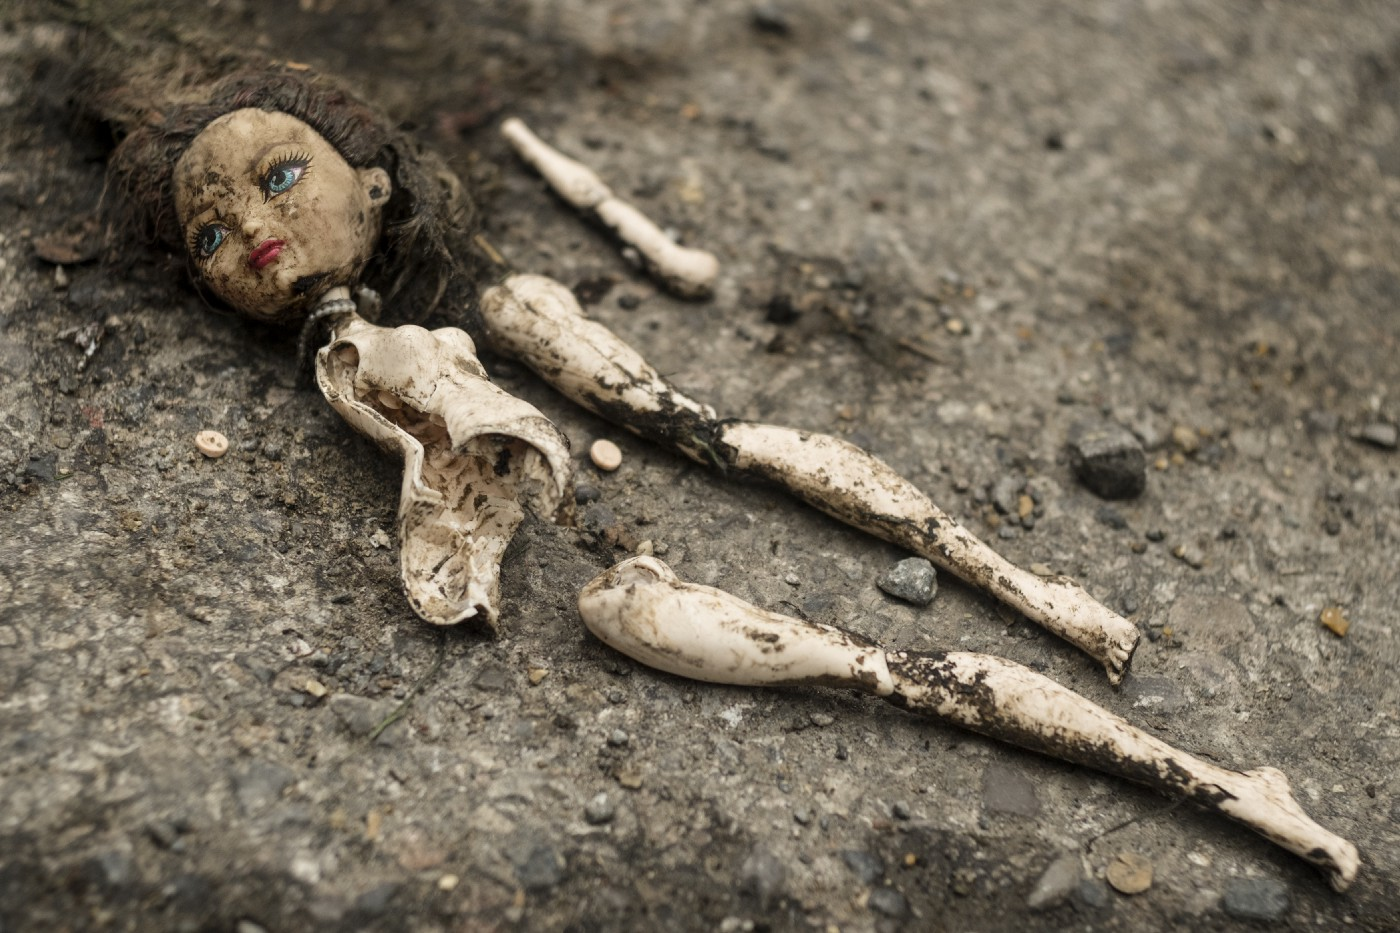 A broken doll in the dirt.